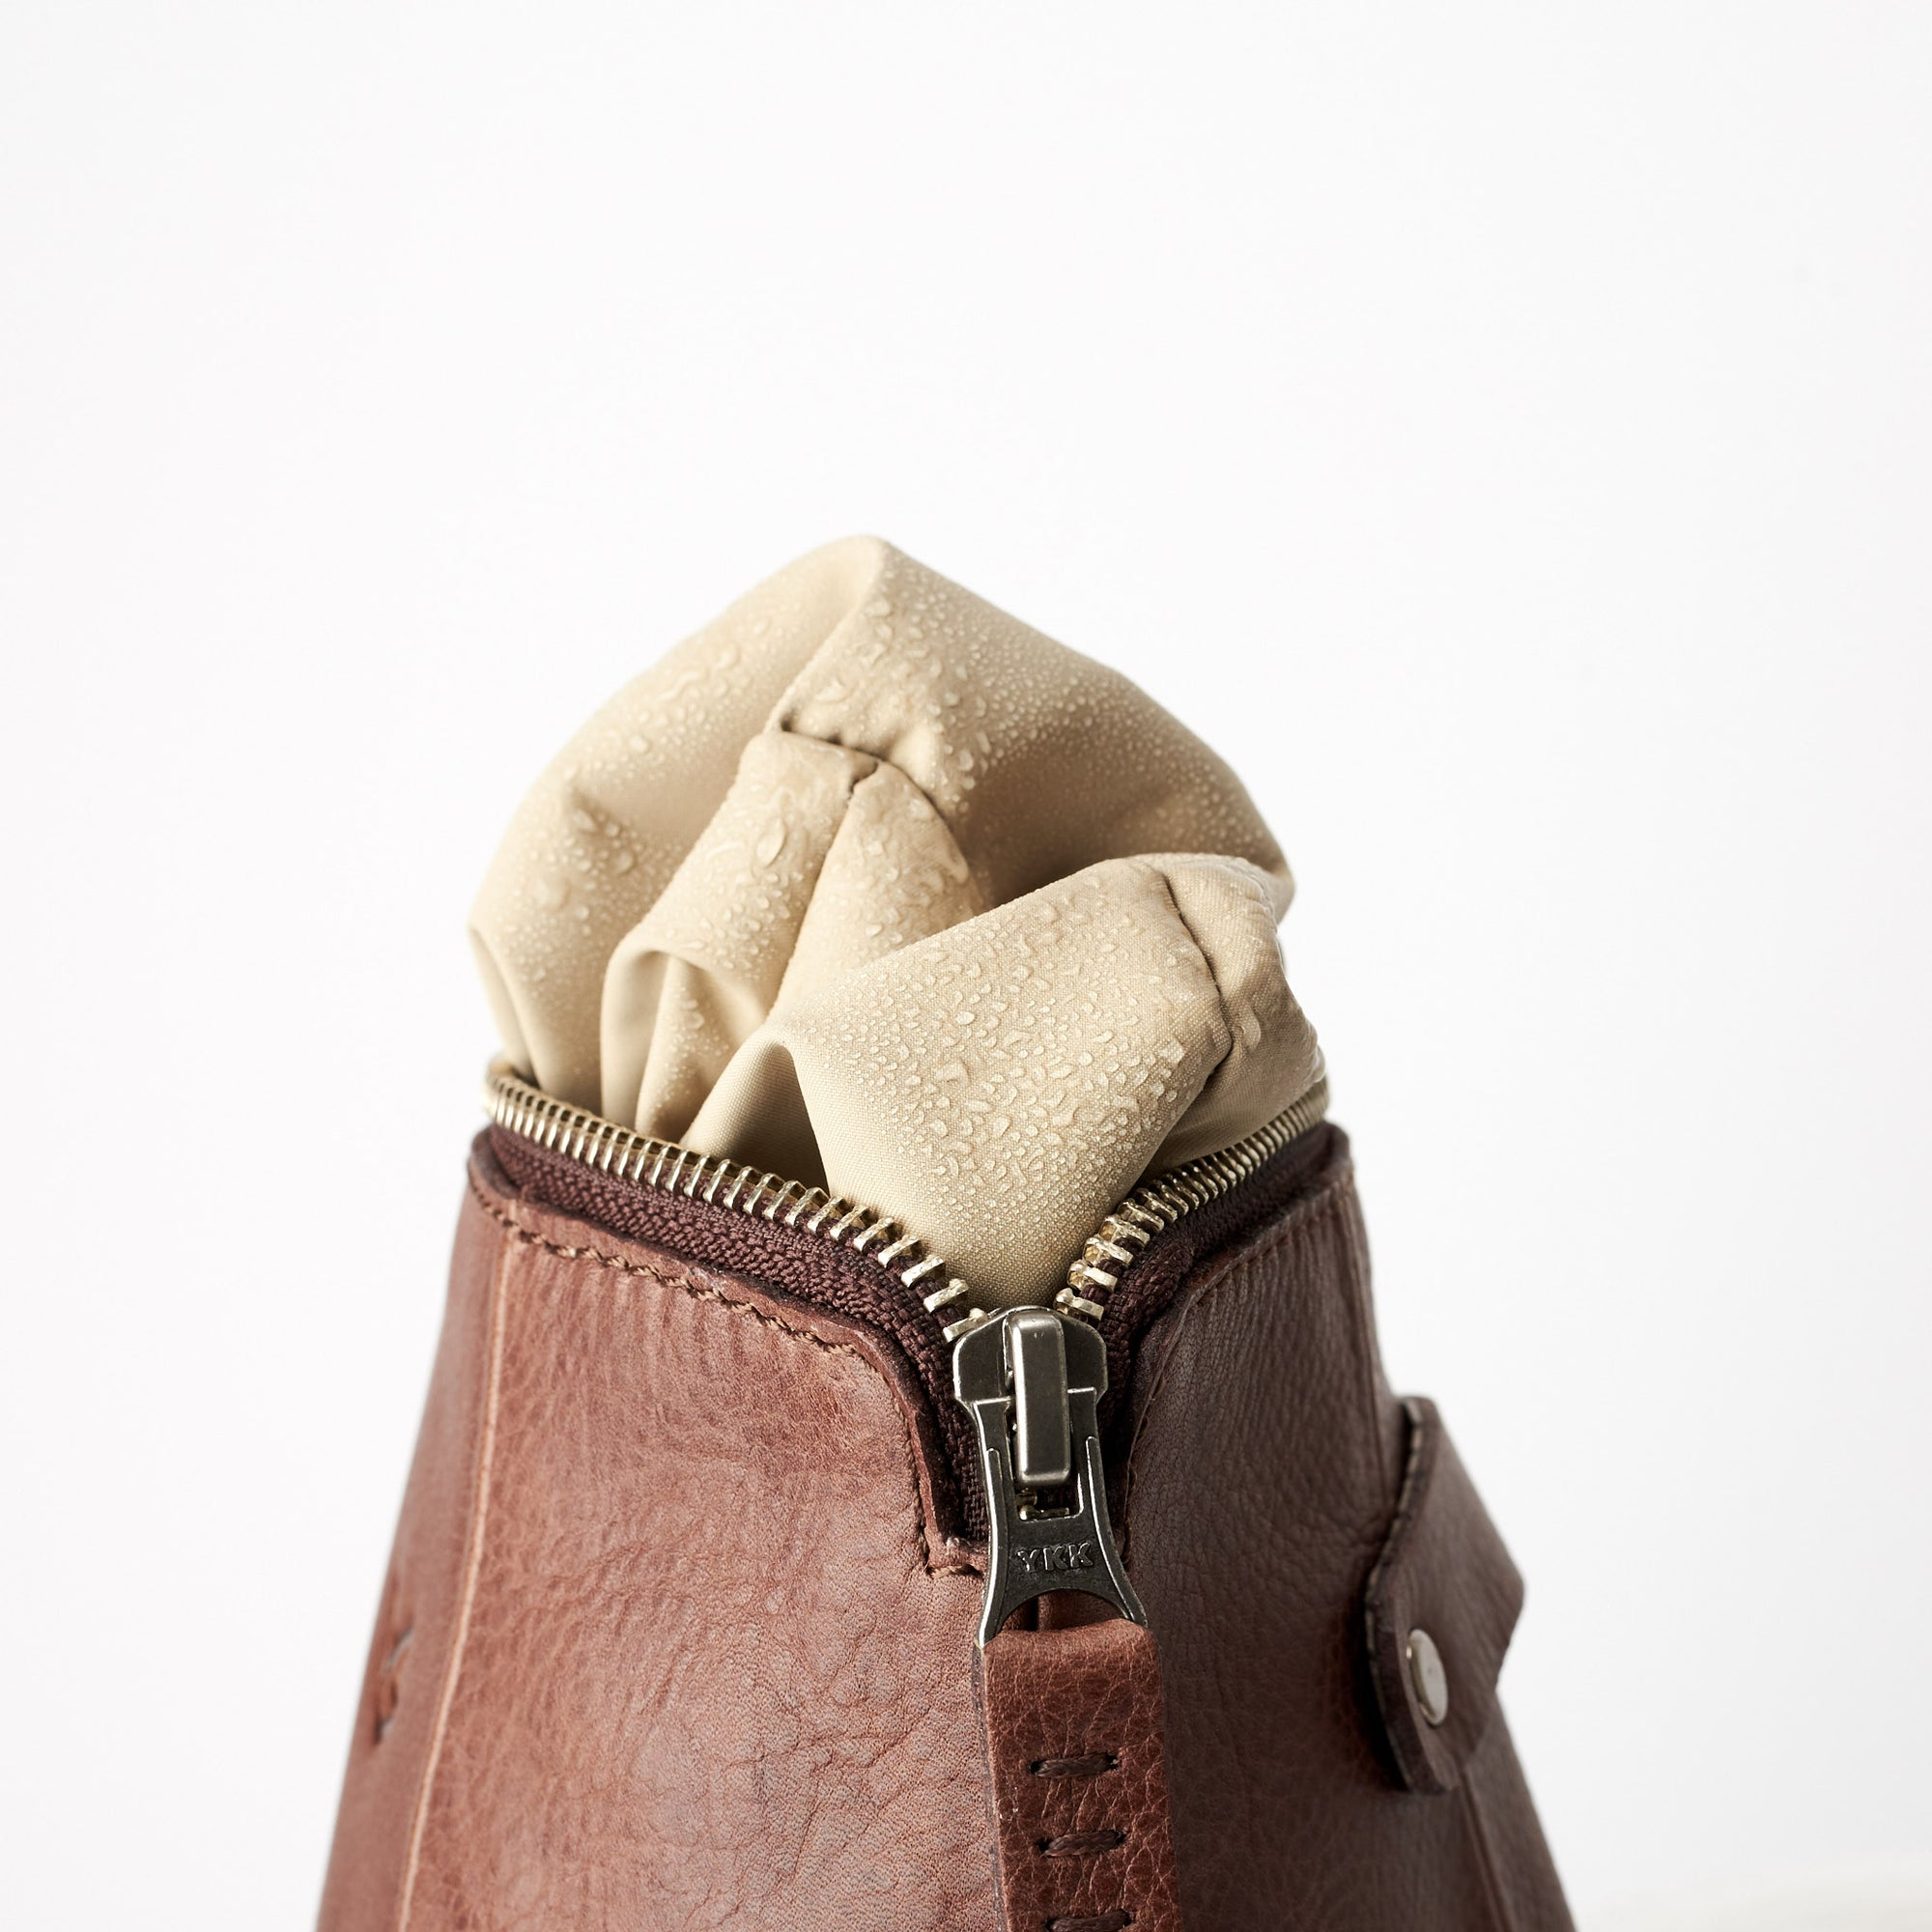 Detail, waterproof interior, hand stitched pull tabs. Brown leather boxer  toiletry bag. 7c0eacf540